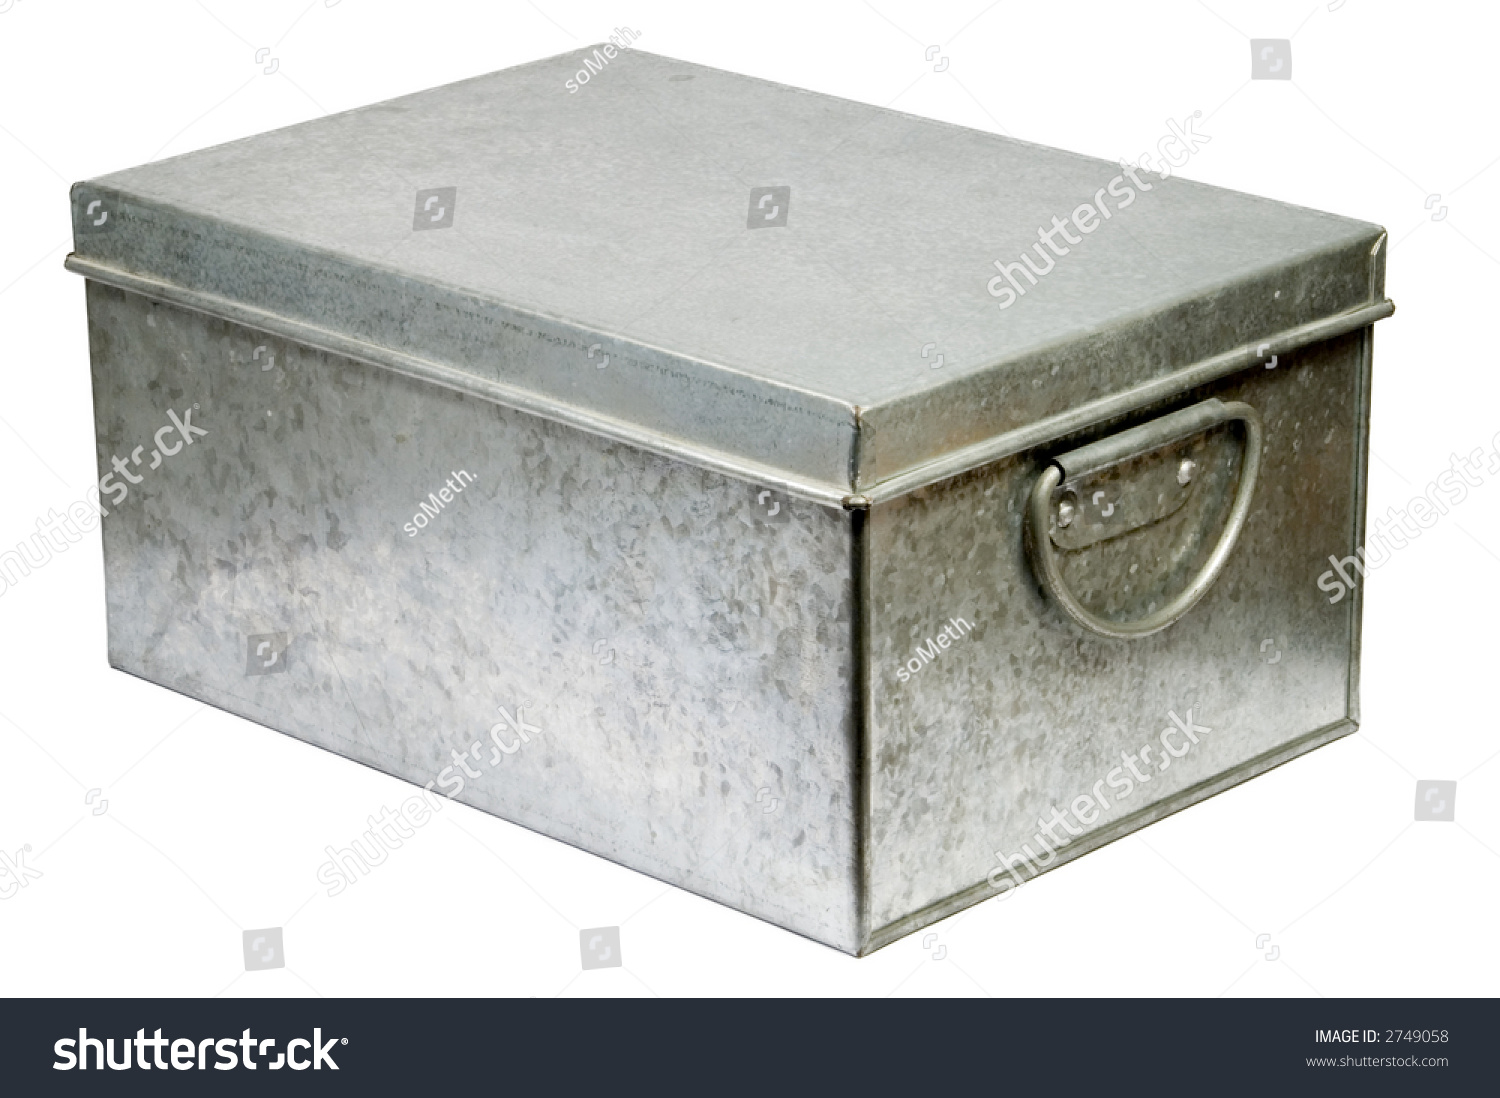 Metal Box Lid Closed Handles Isolated Stock Photo 2749058